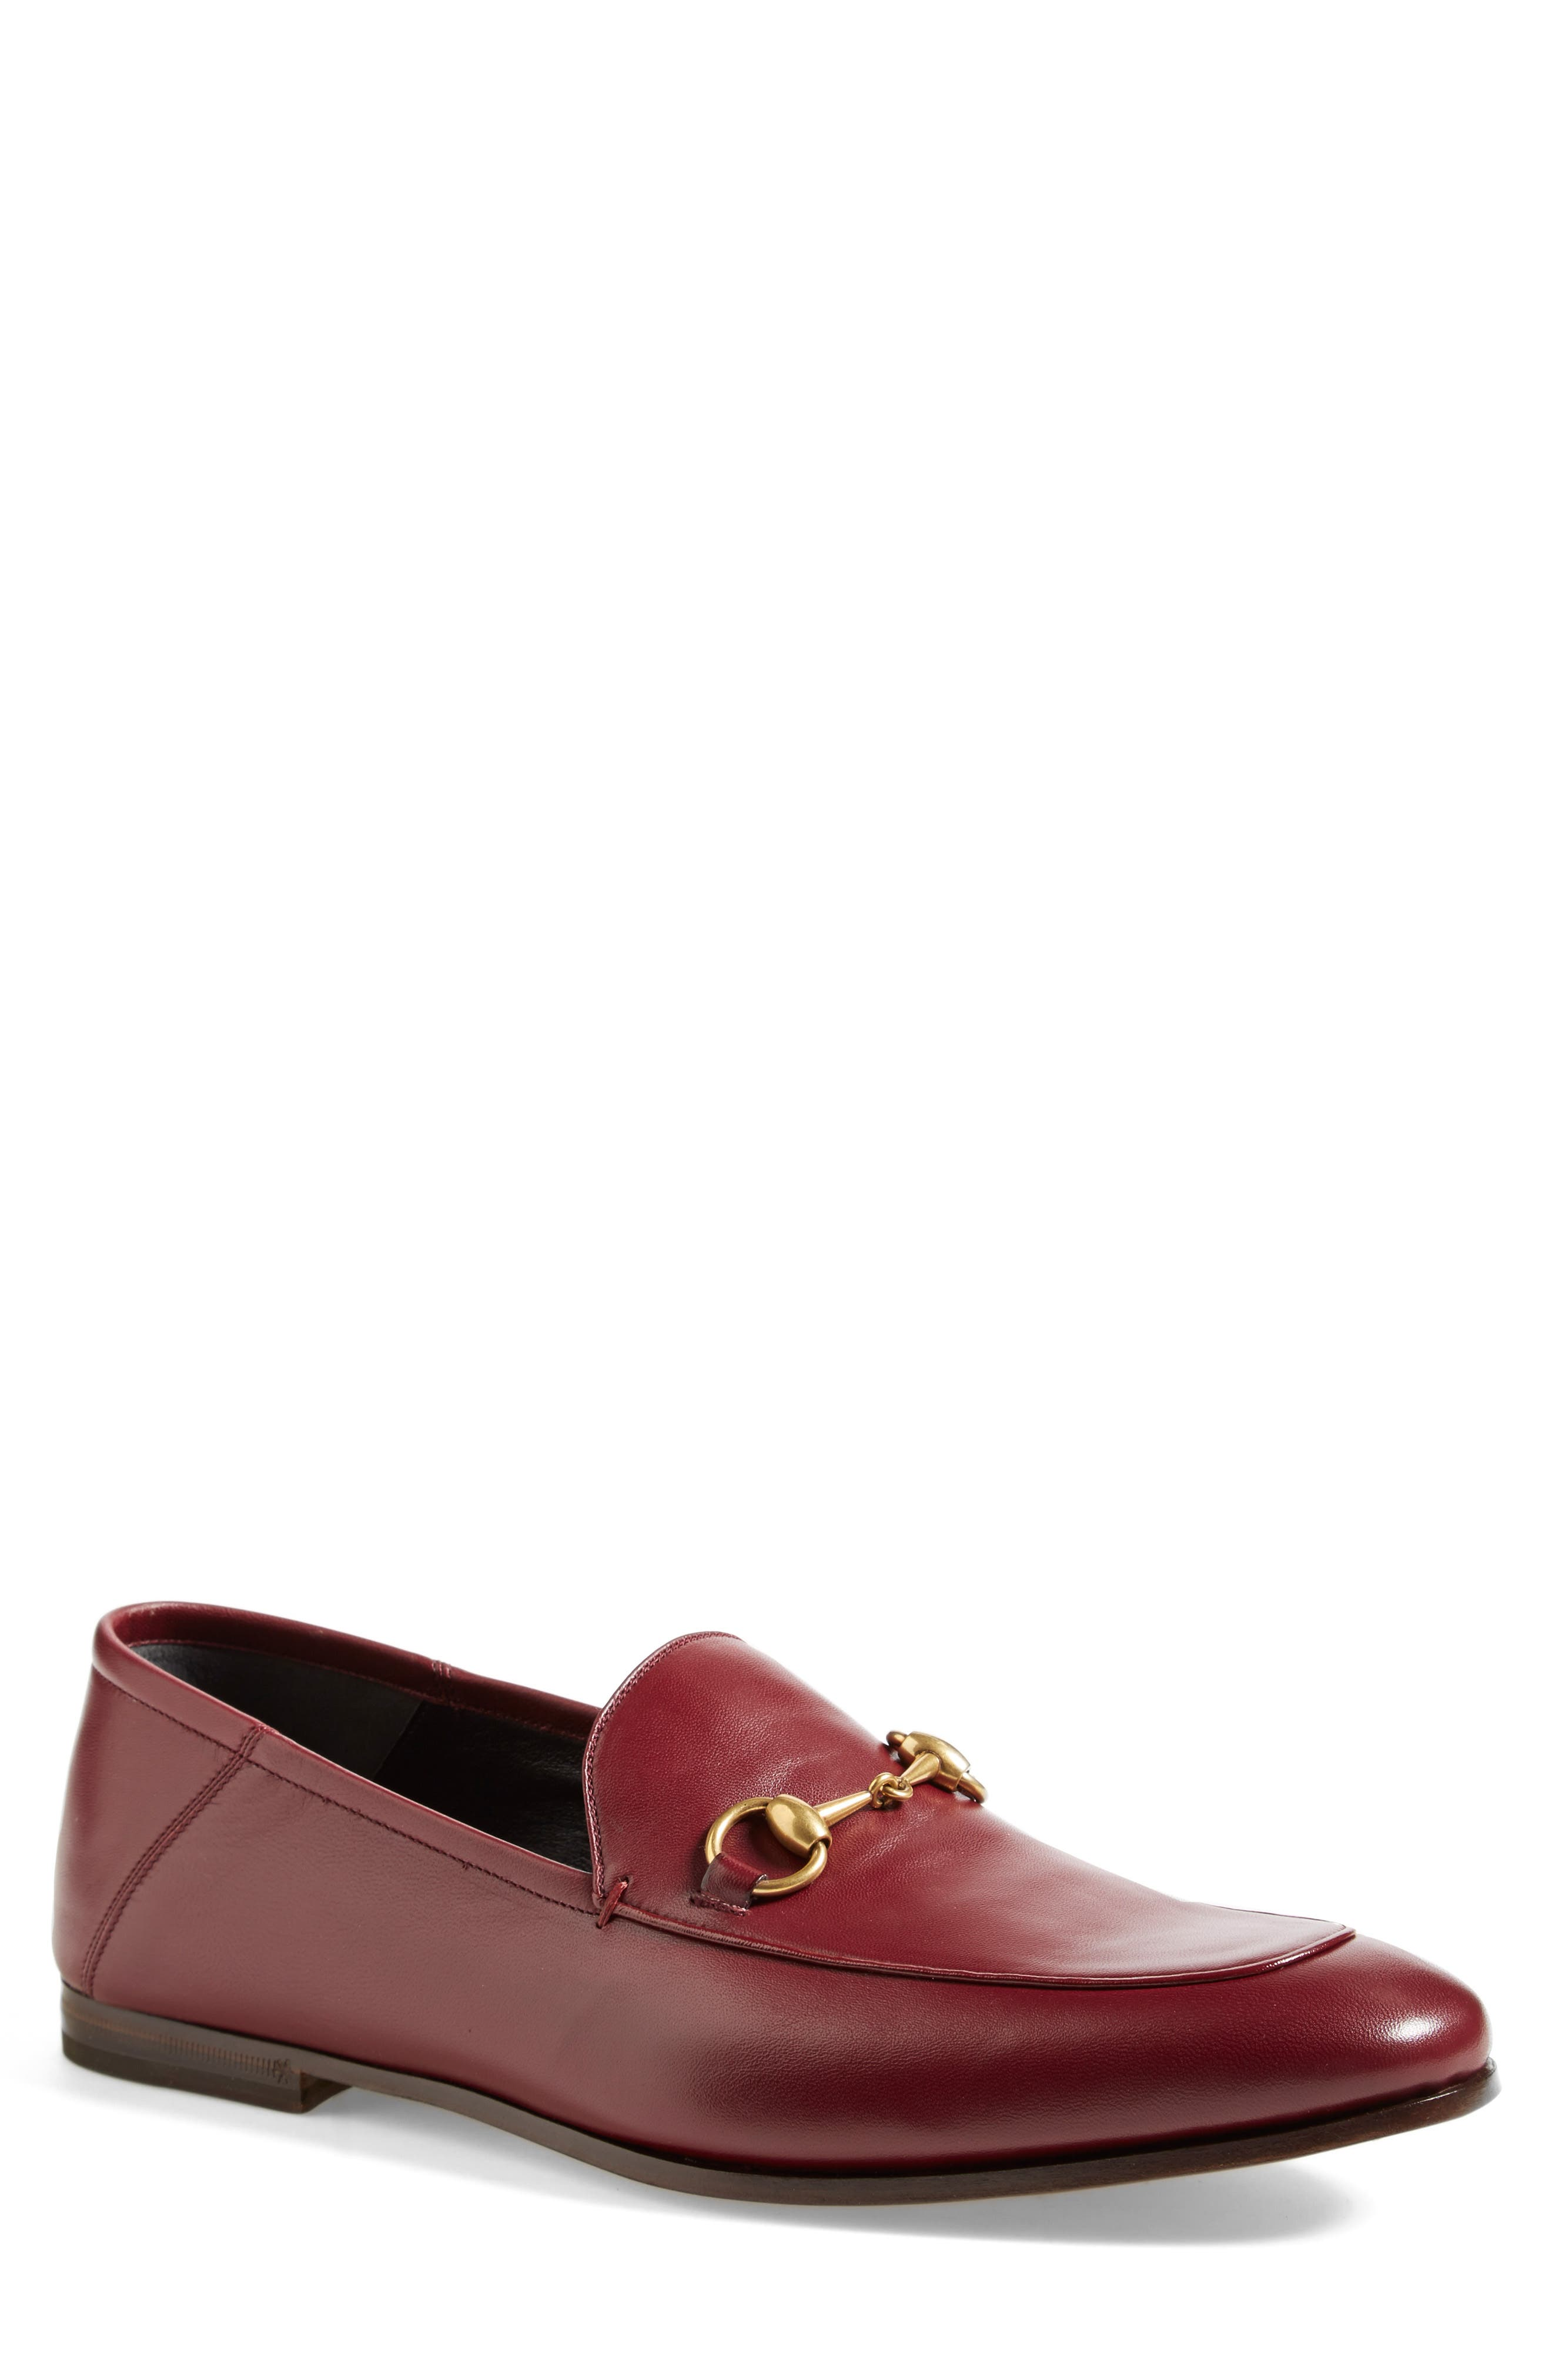 Brixton Leather Loafer,                             Alternate thumbnail 15, color,